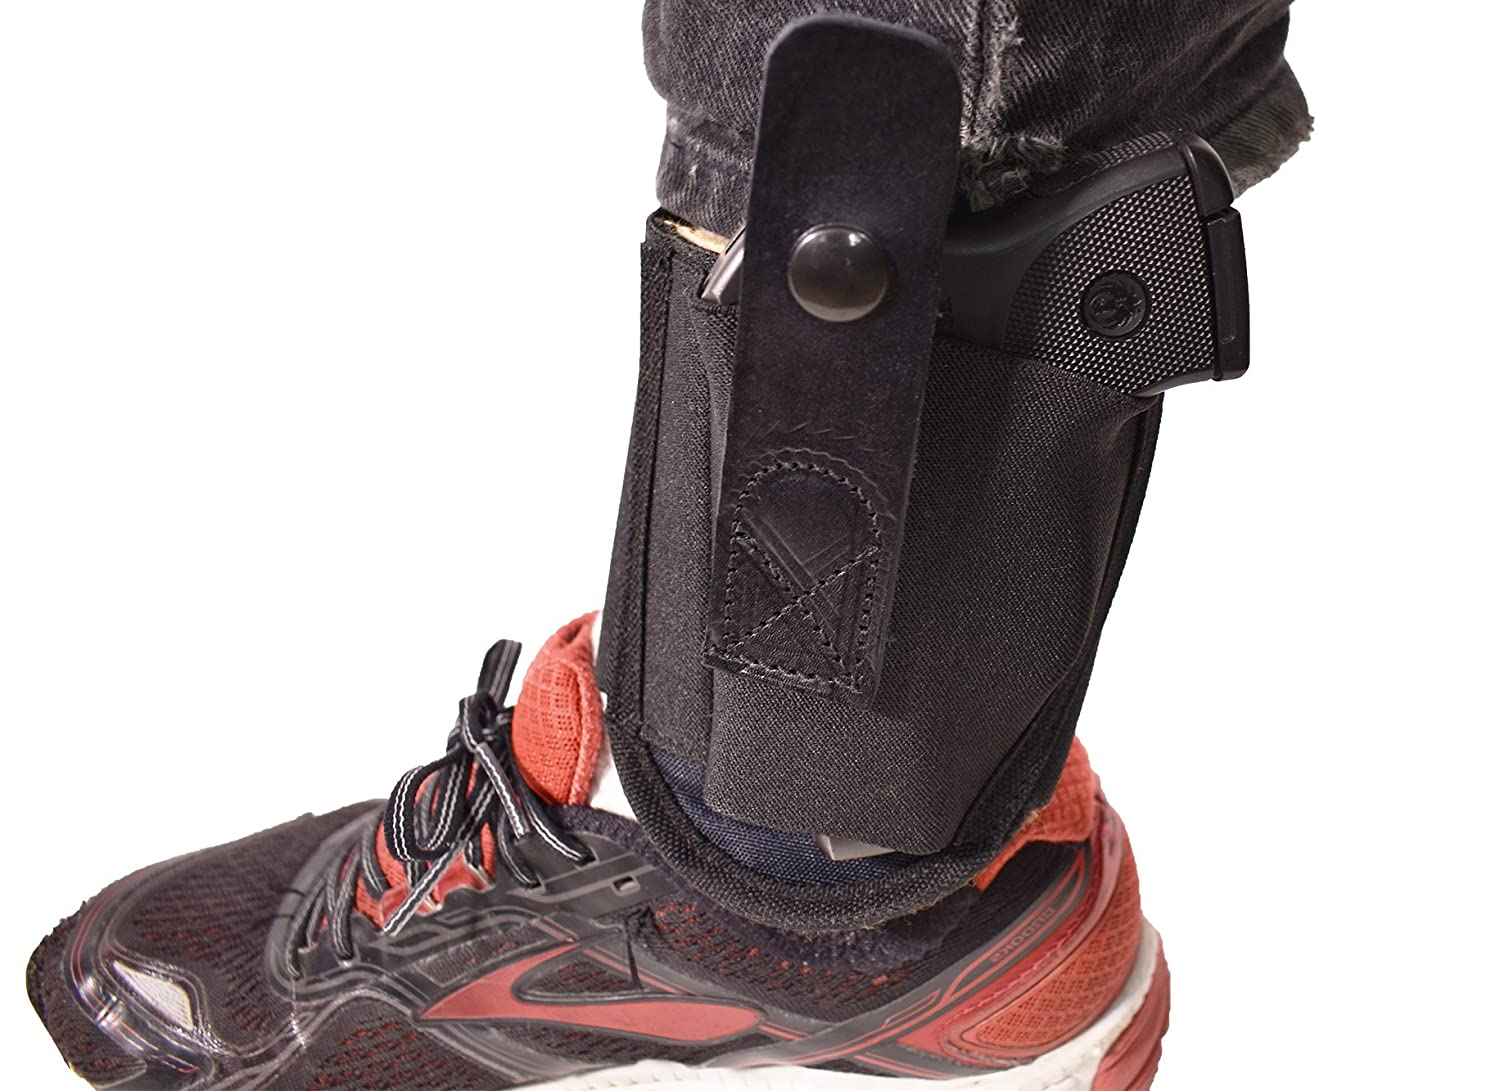 Ruger LCP Concealed Carry Ankle Holster| Fits Glock 42, 43, Sig P938, Ruger  LCP, and other  380 Sub Compact Handguns| Concealed Carrier Ankle Pistol